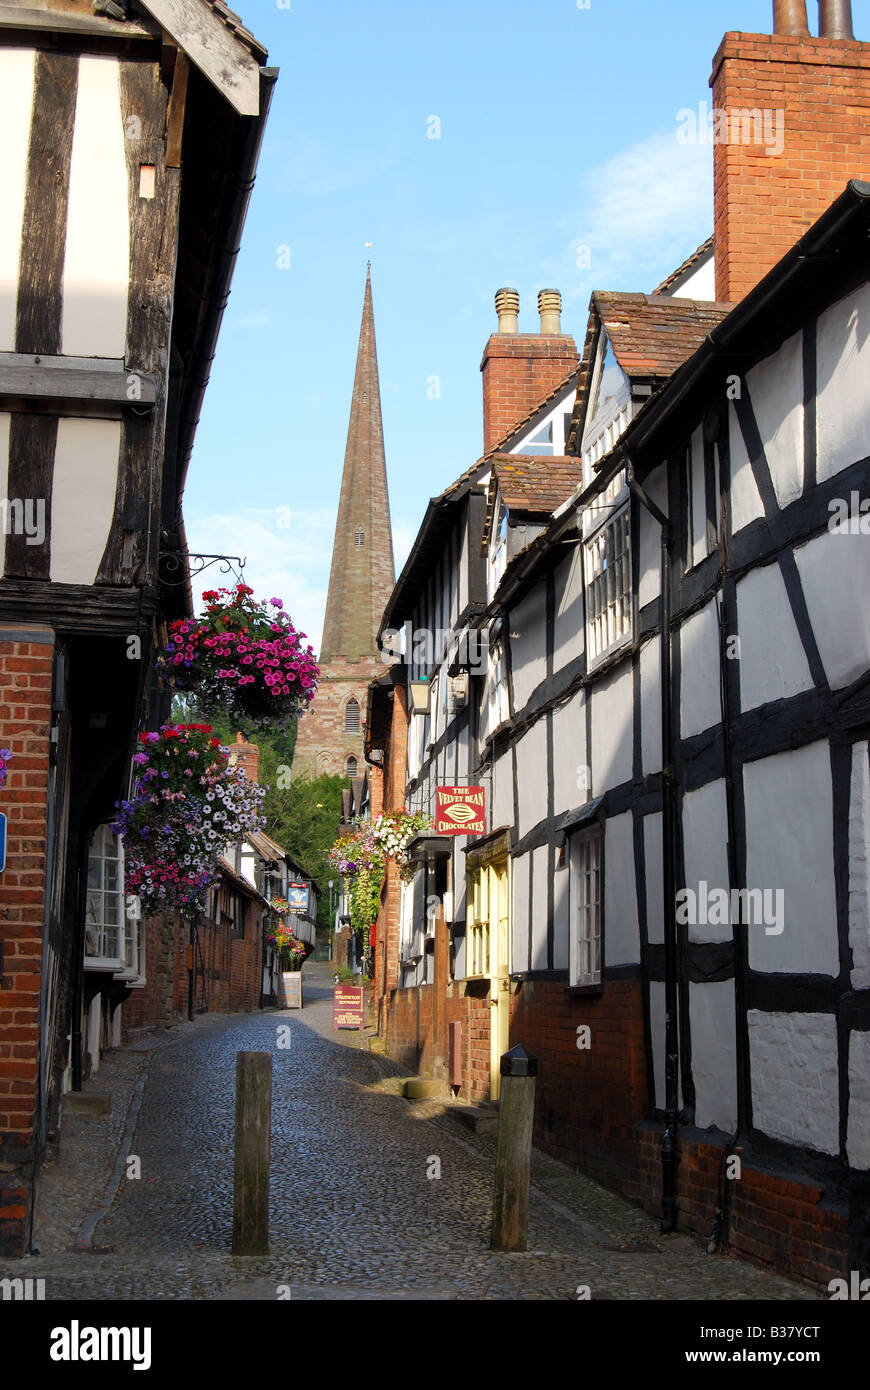 Narrow lane and Parish Church of St.Michaels, Church Lane, Ledbury, Herefordshire, England, United Kingdom - Stock Image